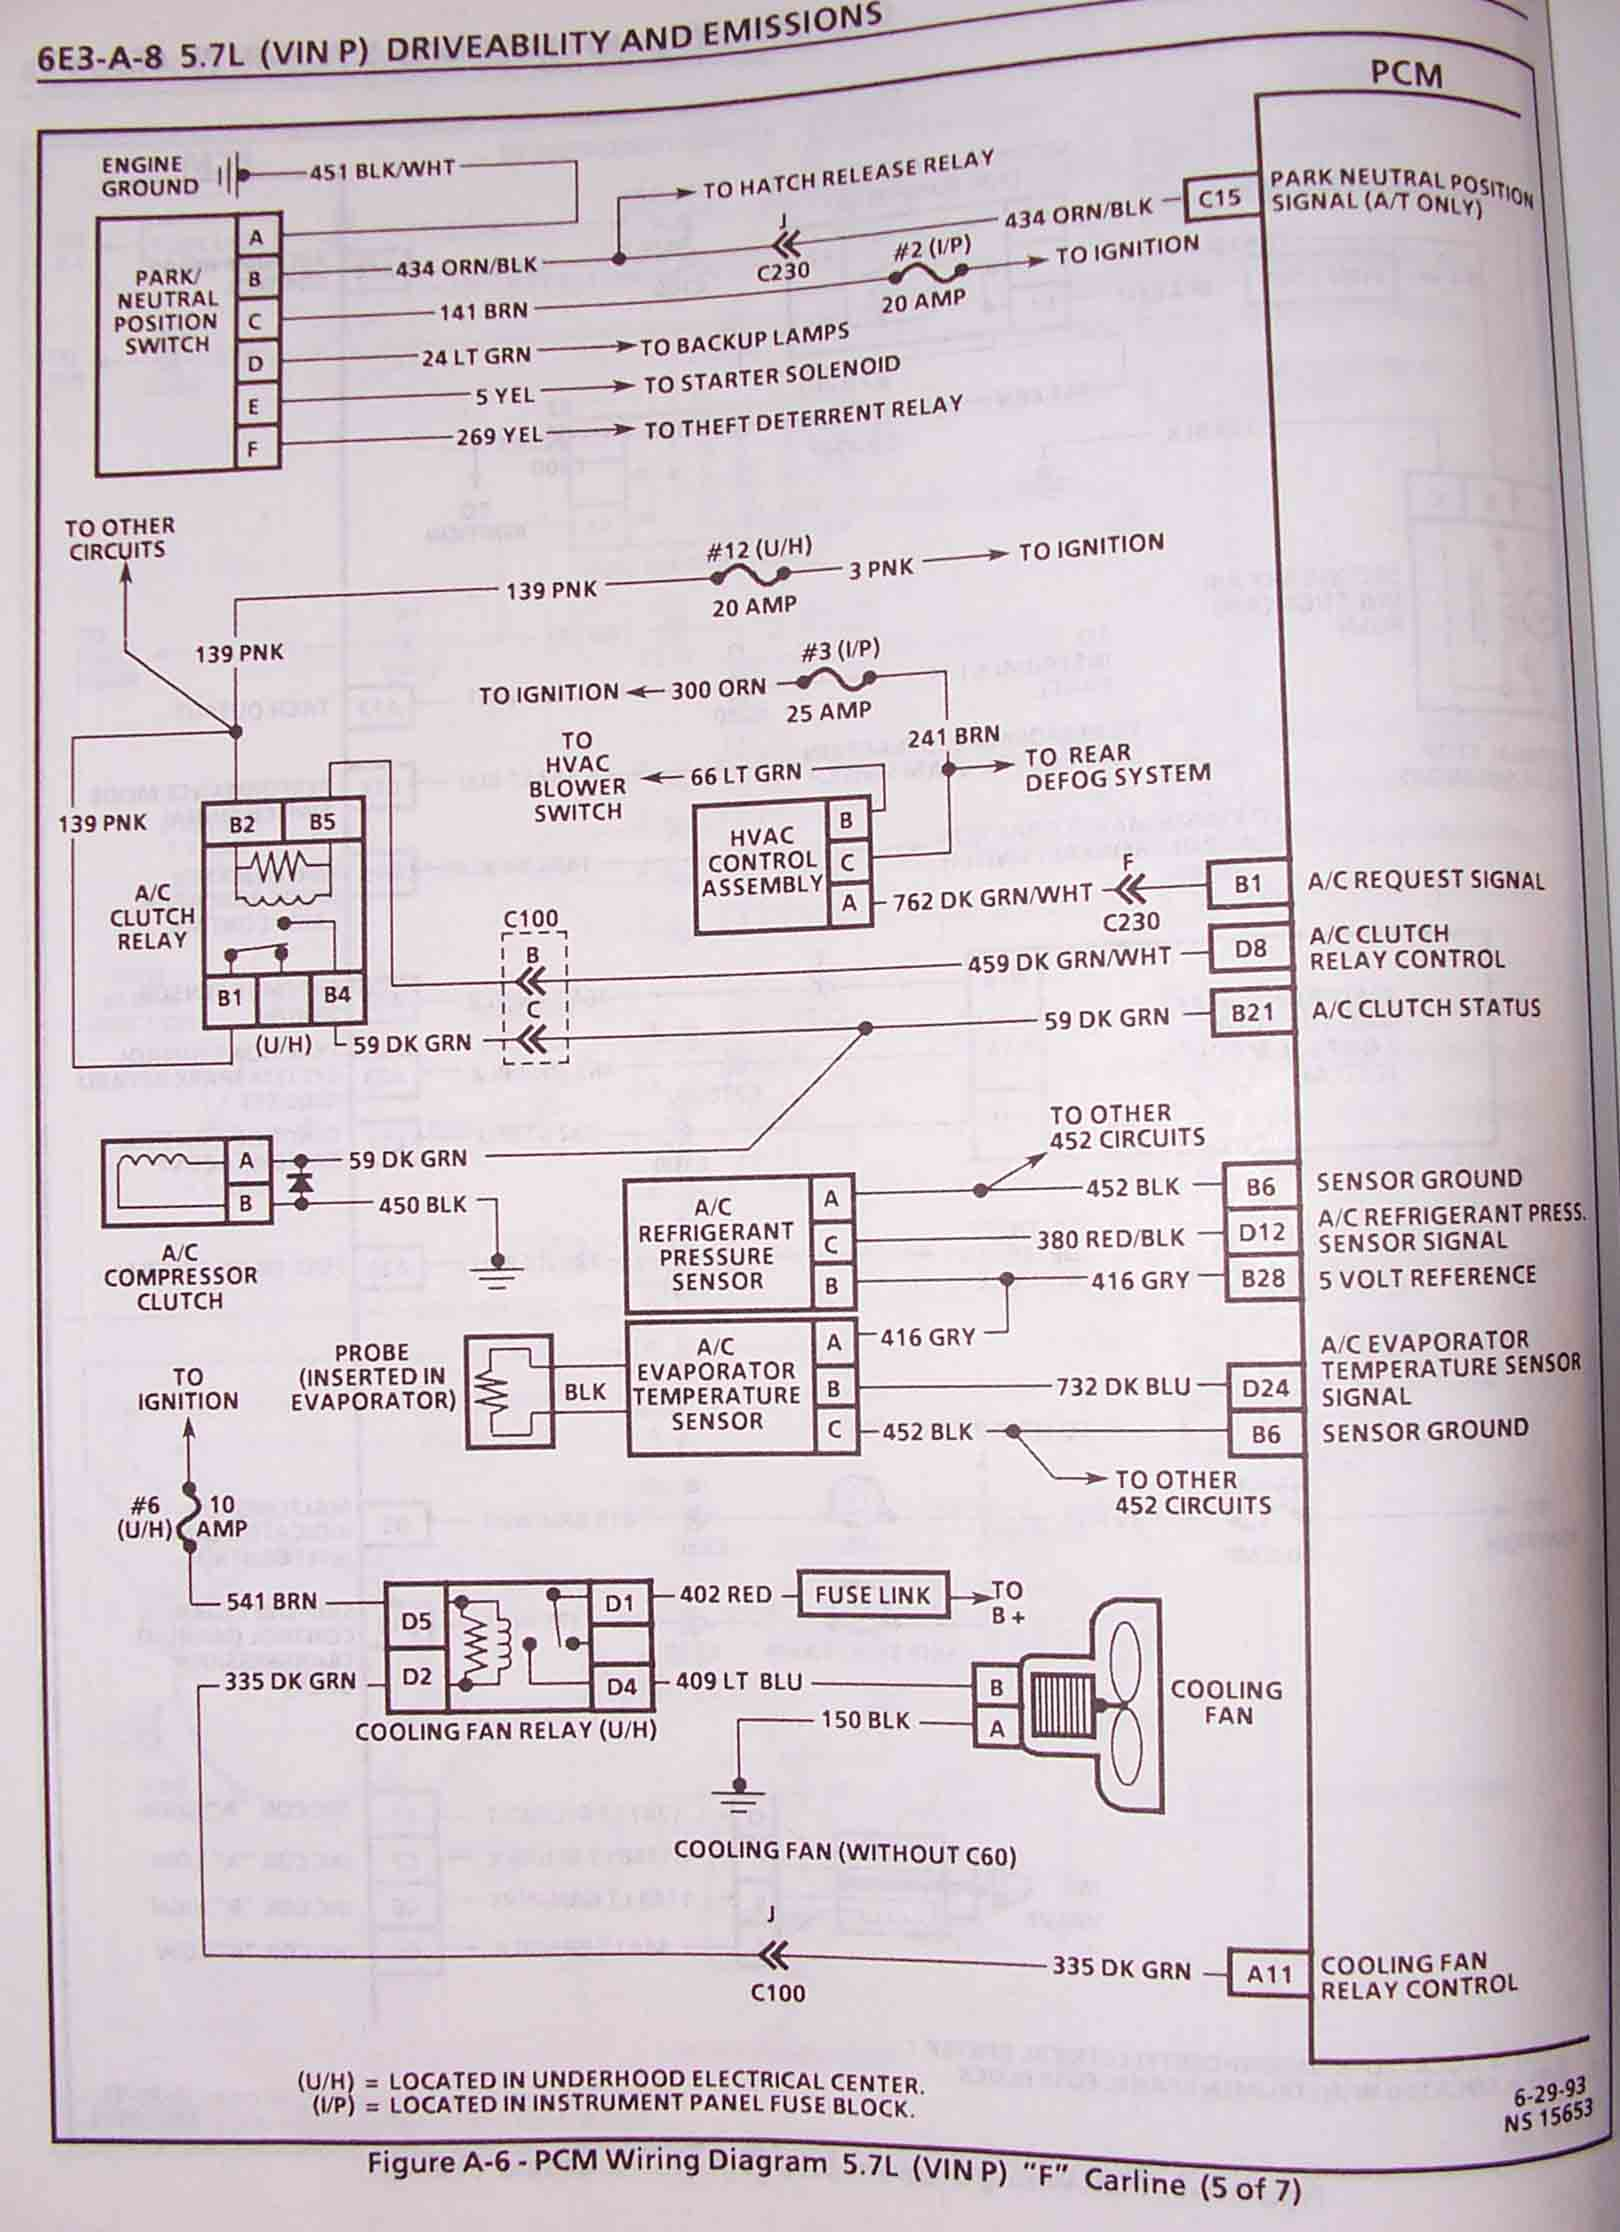 94 Chevy Camaro Wiring Diagram Schematics Diagrams 1997 97 Detailed Rh Lelandlutheran Com 1968 1993